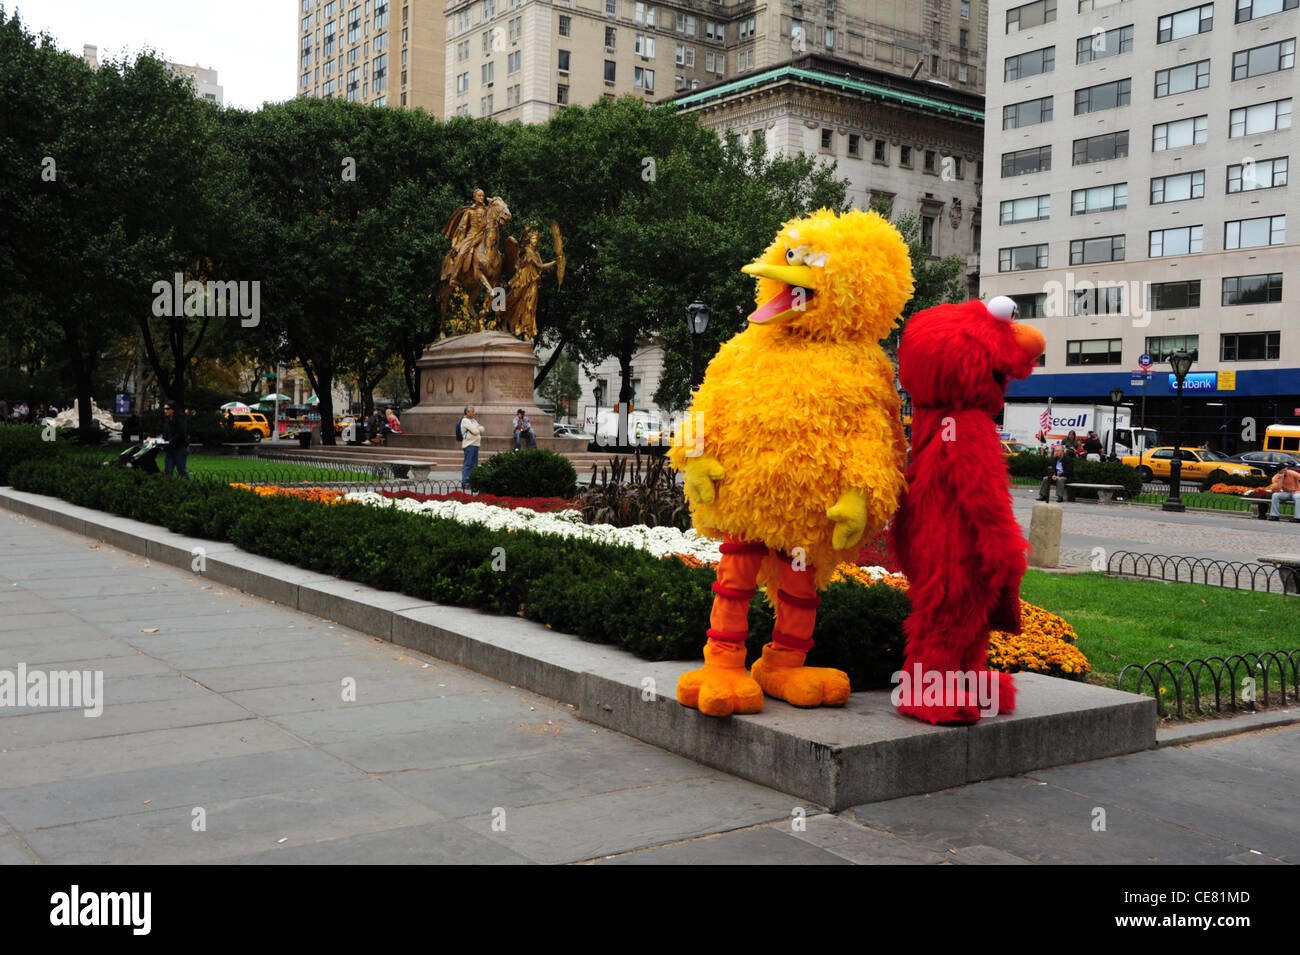 Two Sesame Street Big Bird Elmo Entertainers Posing Backdrop Green Trees Sherman Monument Grand Army Plaza New York